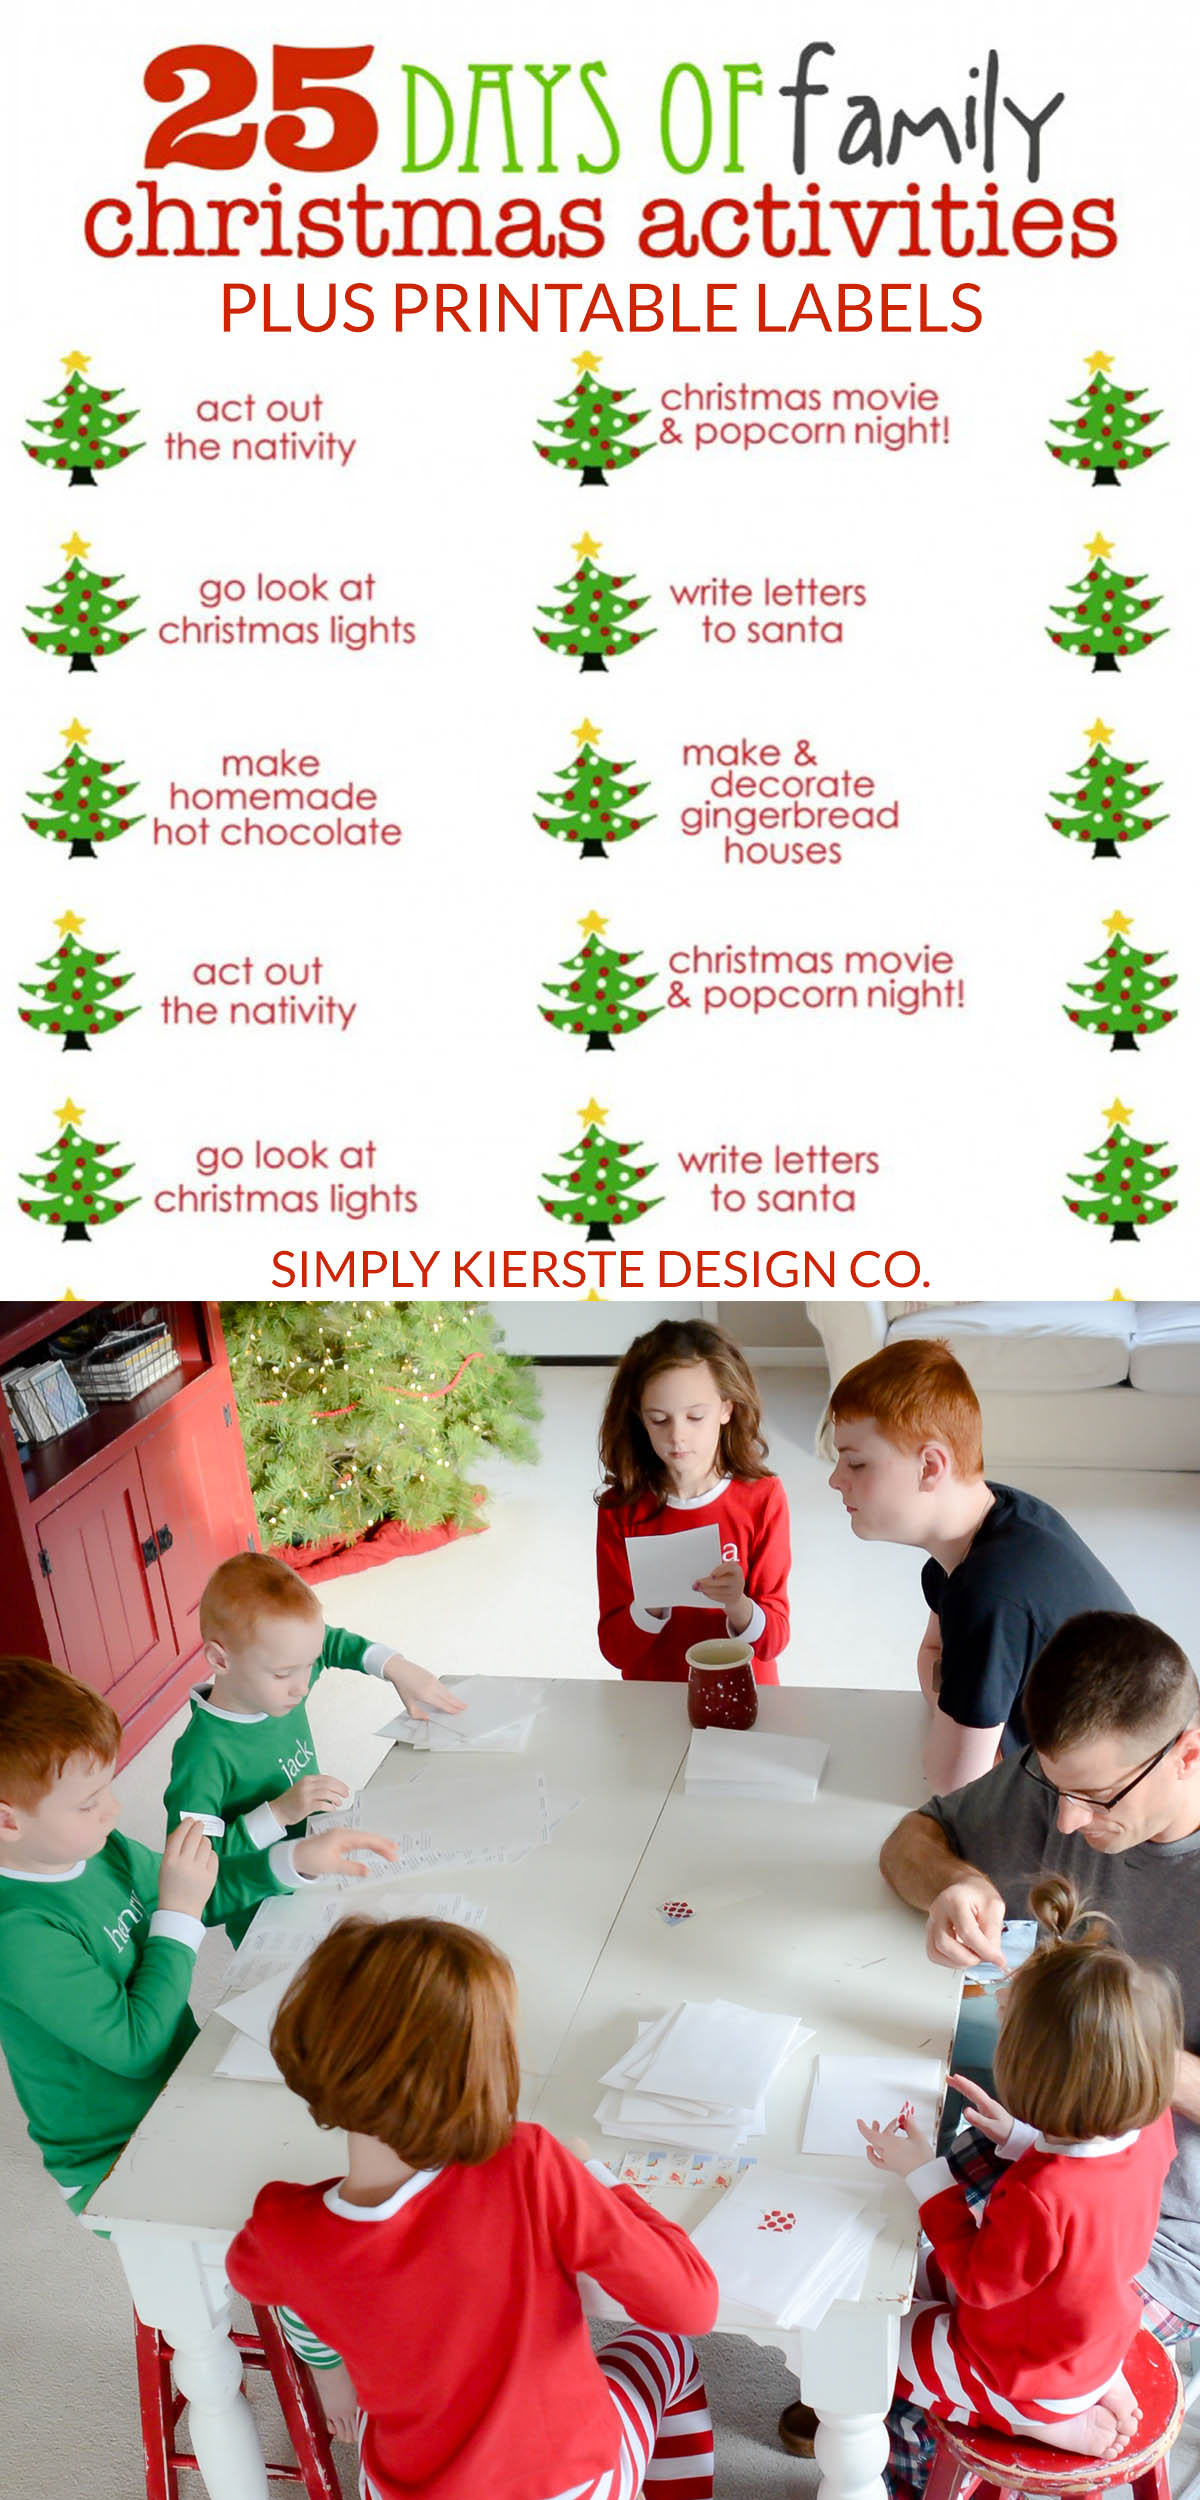 25 Days Of Family Christmas Activities